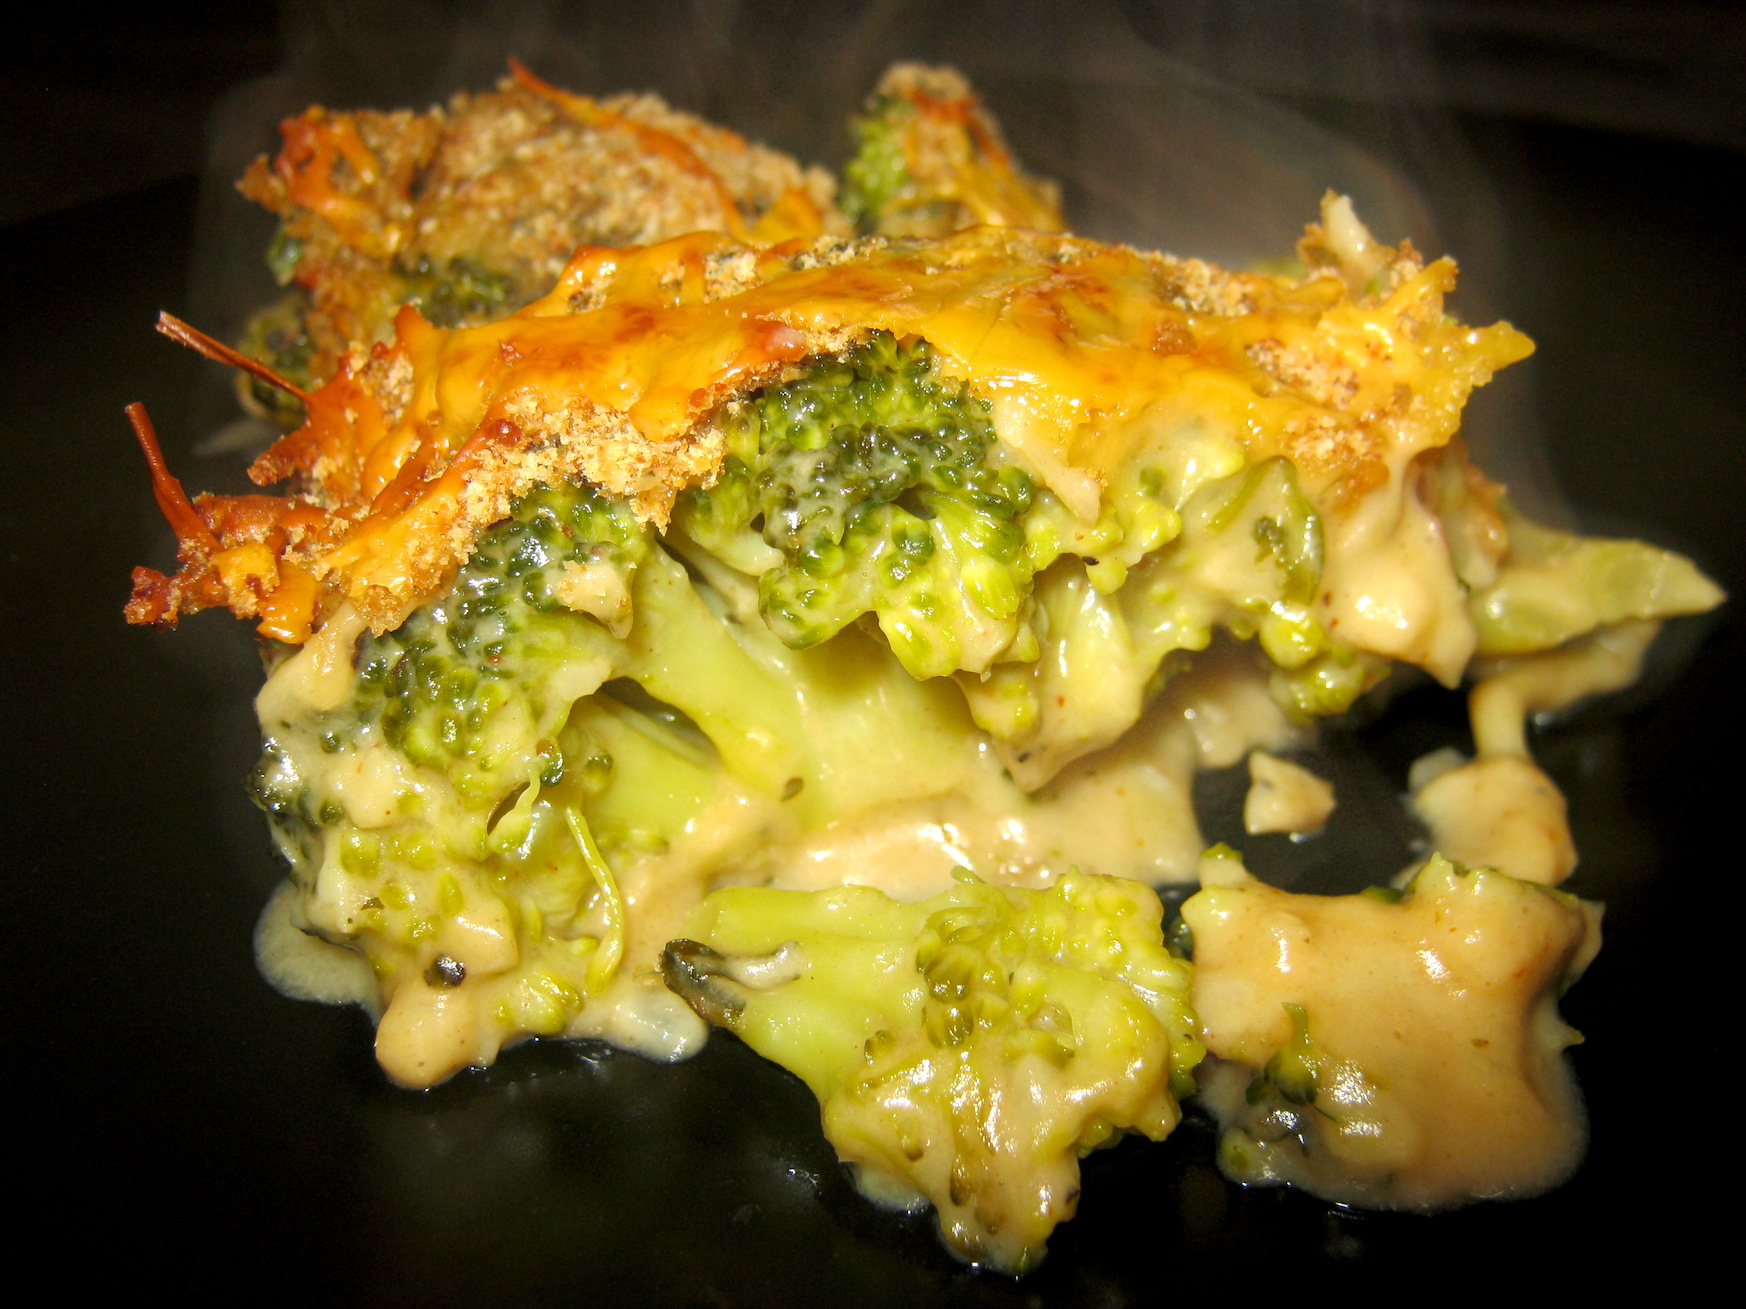 Bellville Baked Broccoli Recipe